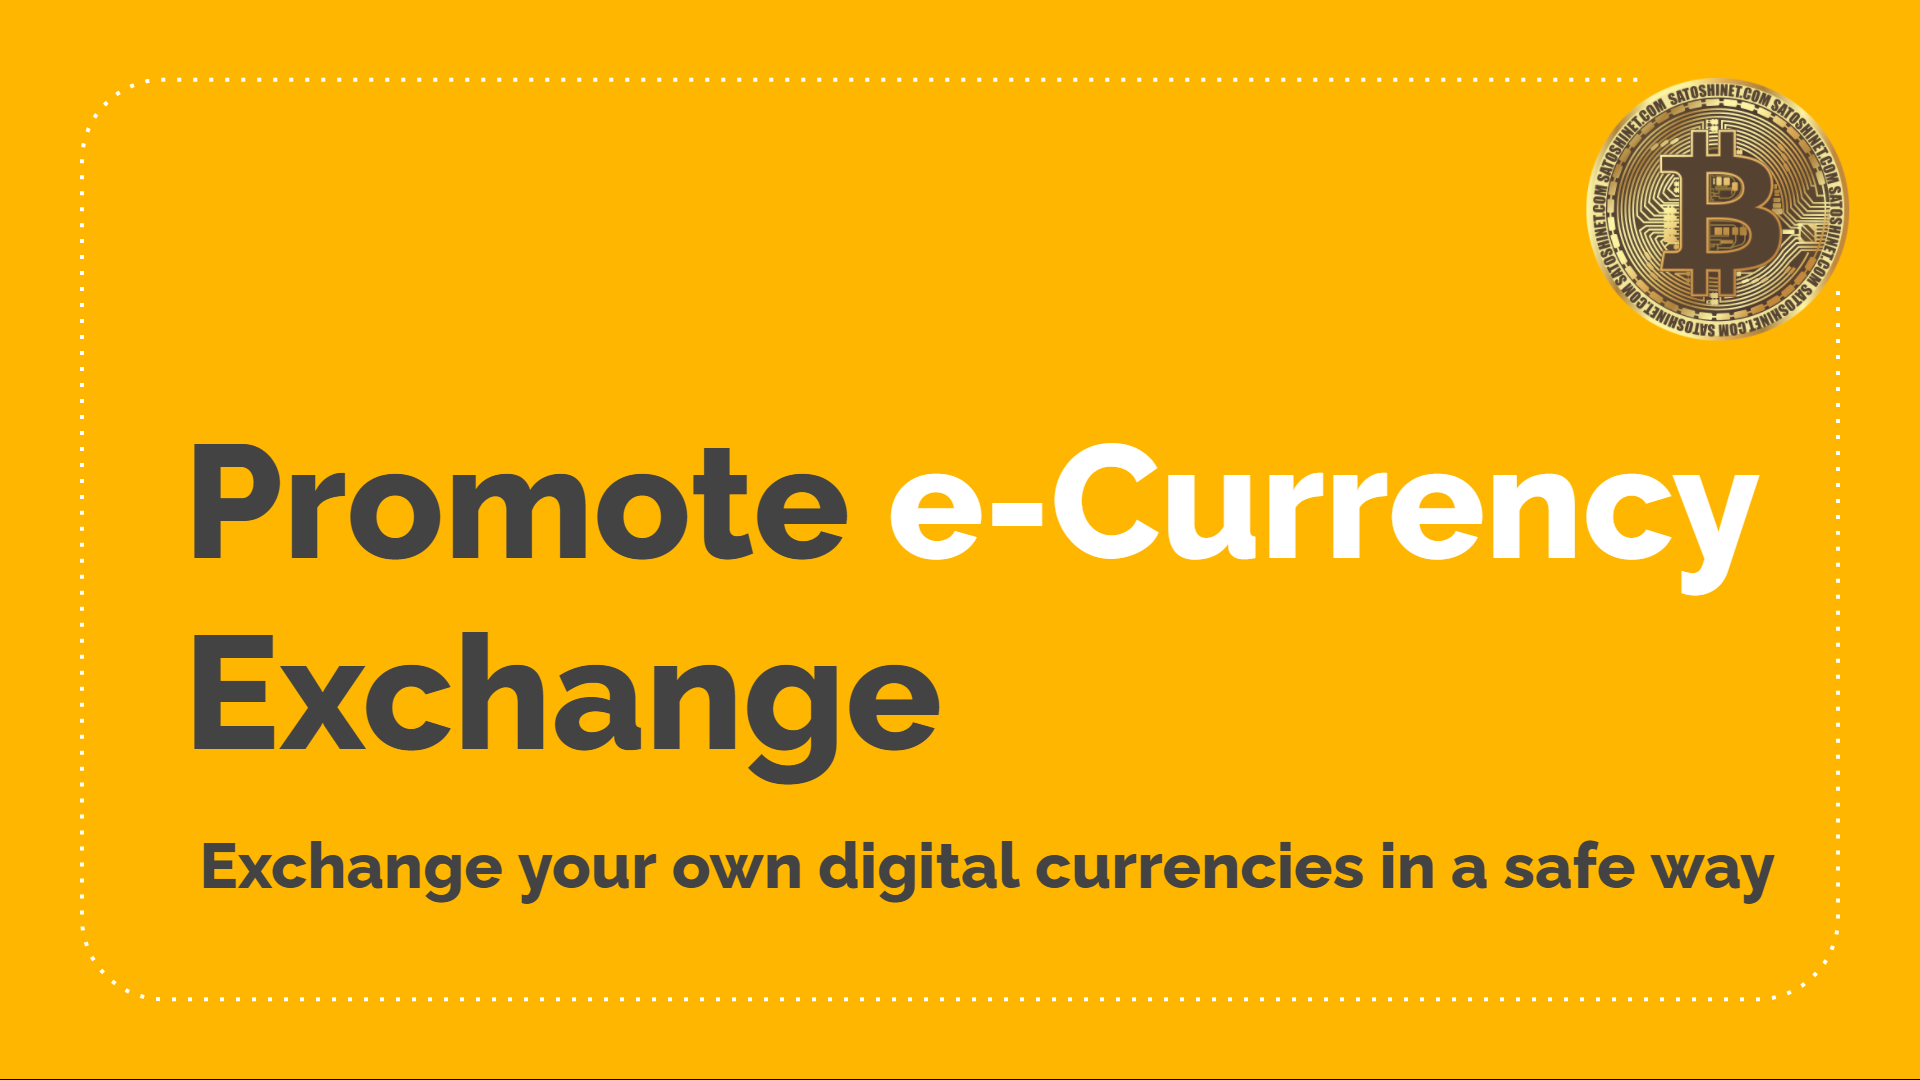 Promote e-Currency Exchange